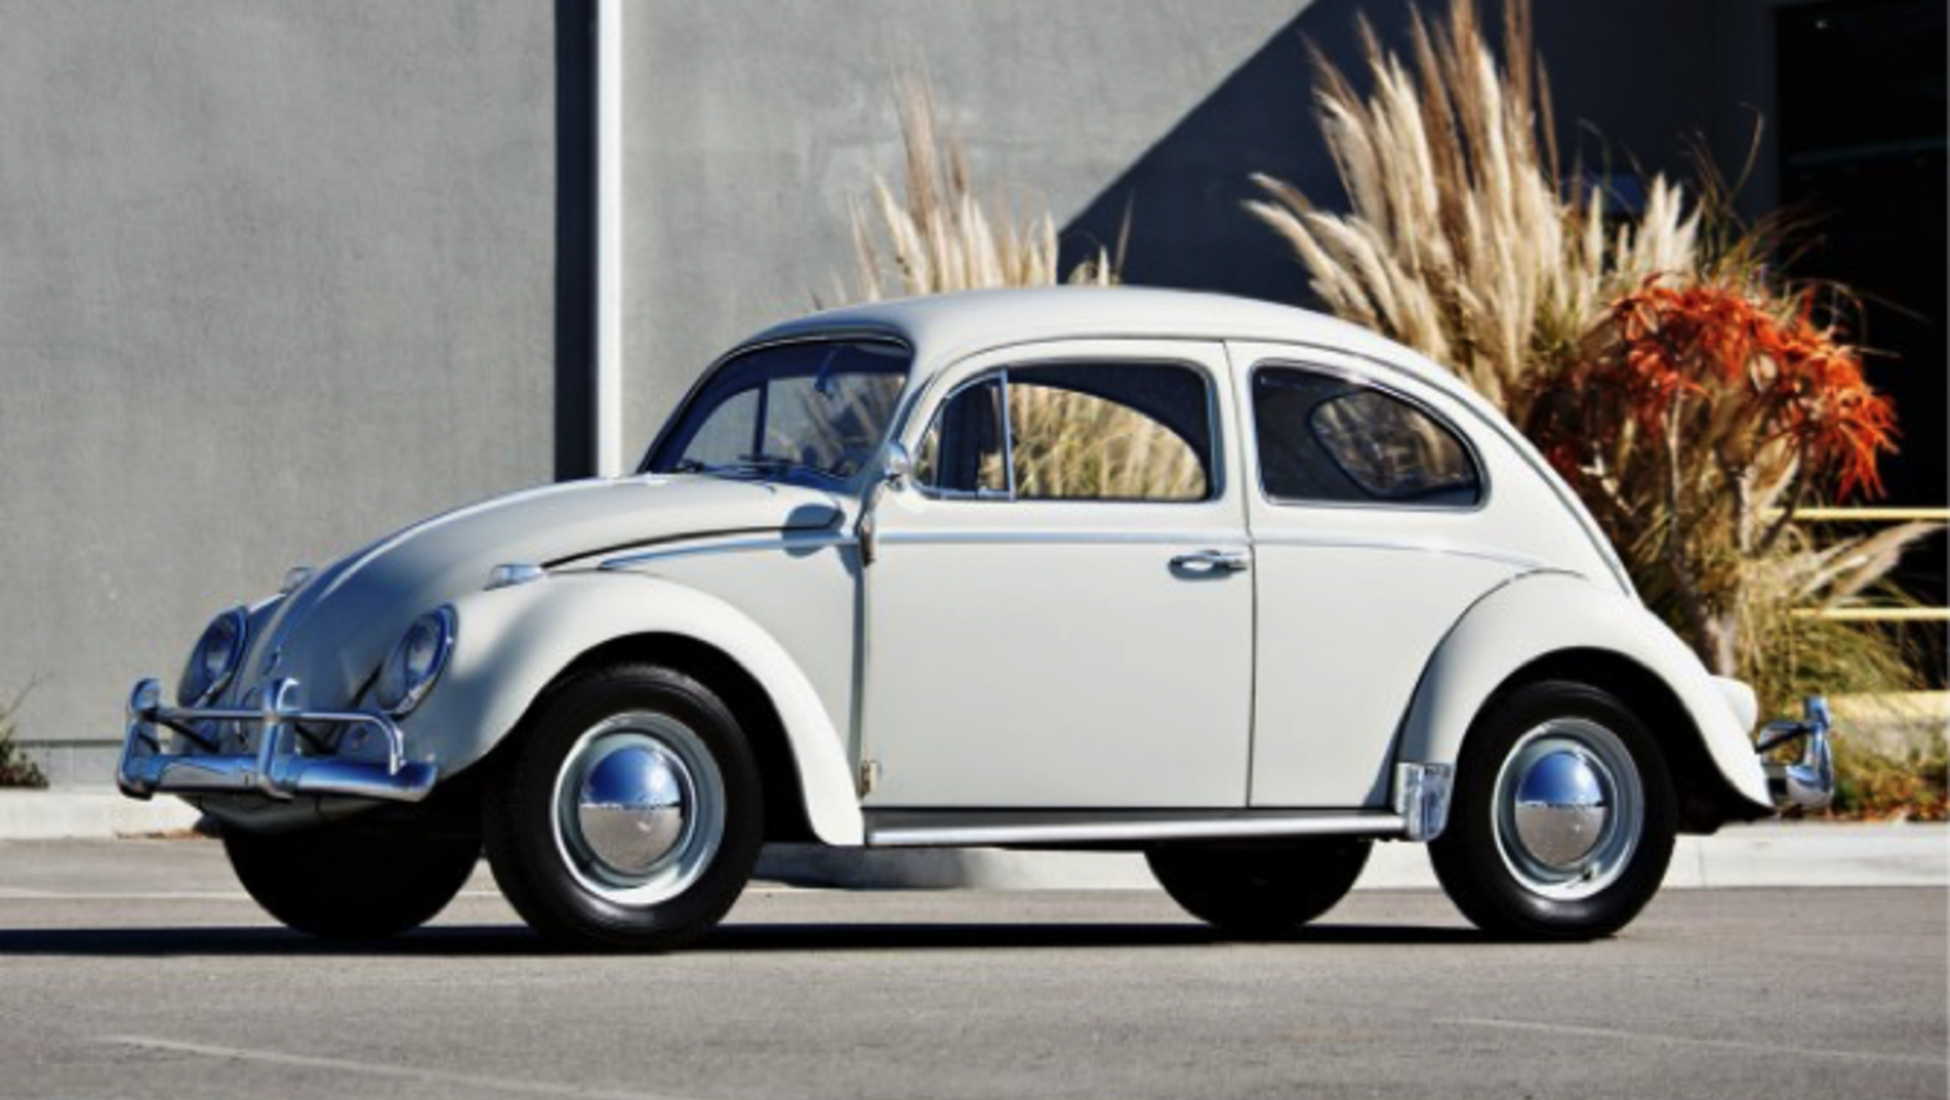 volkswagen old with car for sale design in addition ideas fantastic cute beetle